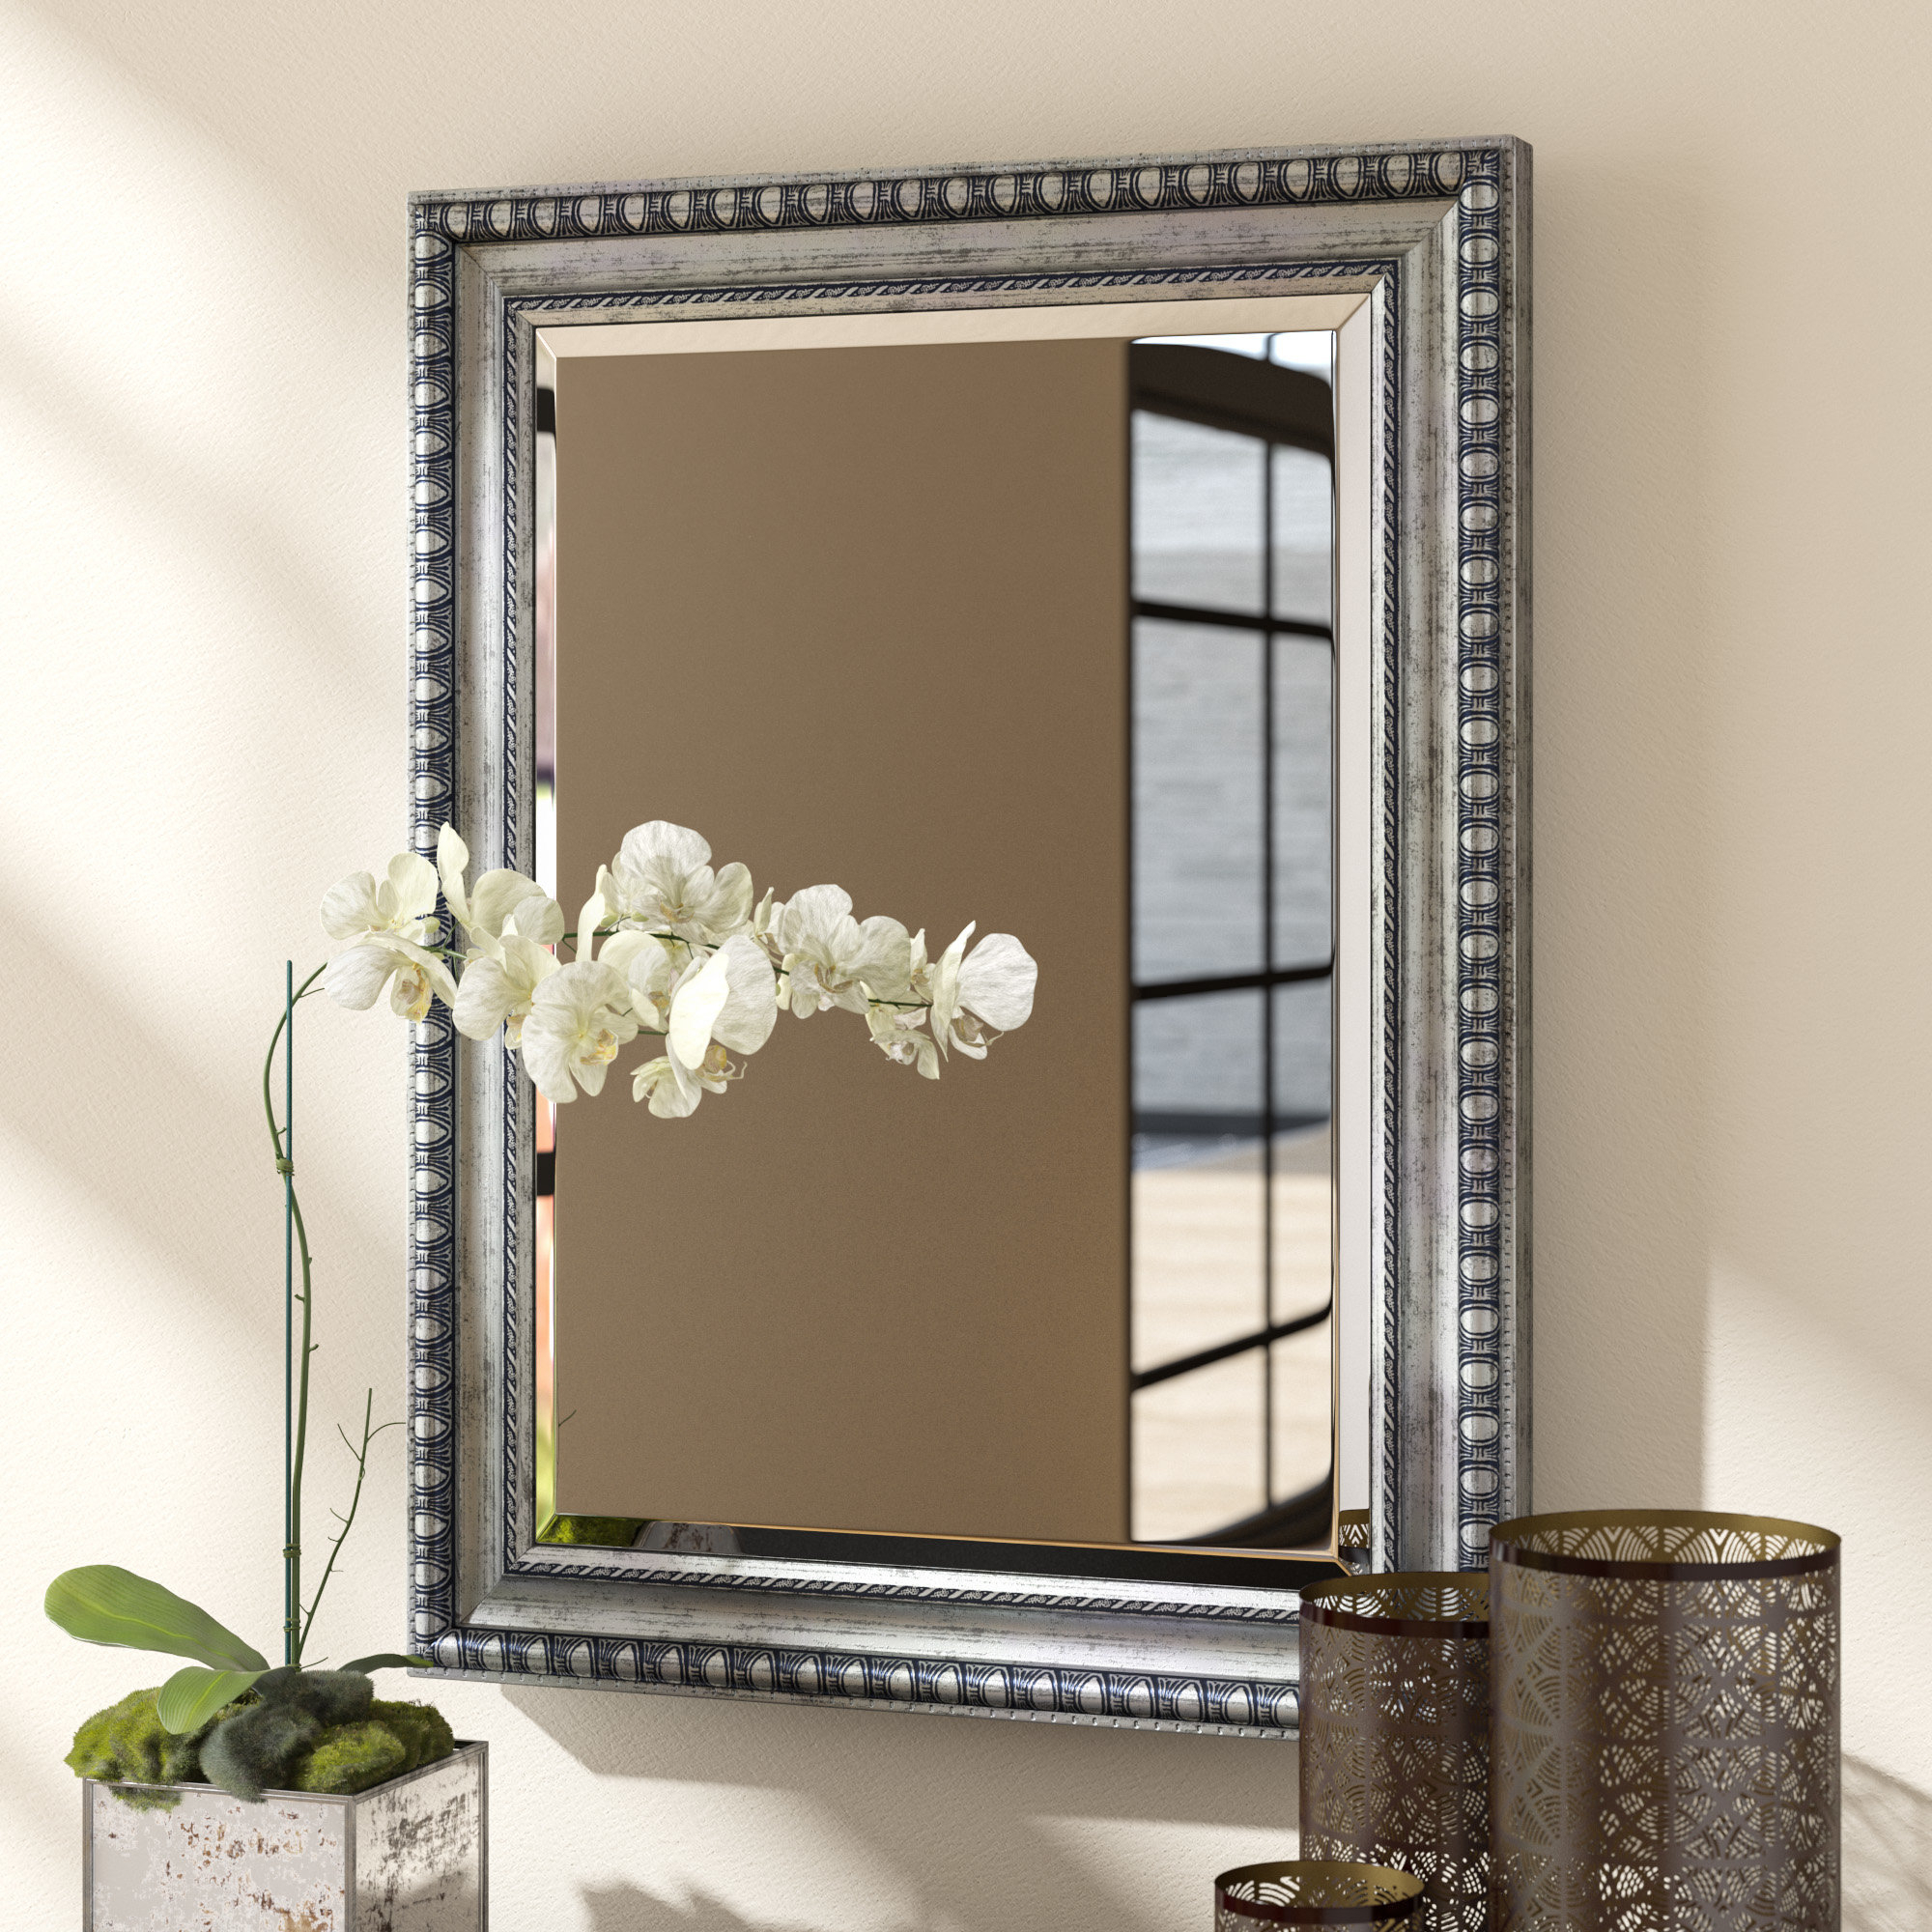 Eriq Framed Wall Mirror Within Most Recent Framed Wall Mirrors (View 5 of 20)